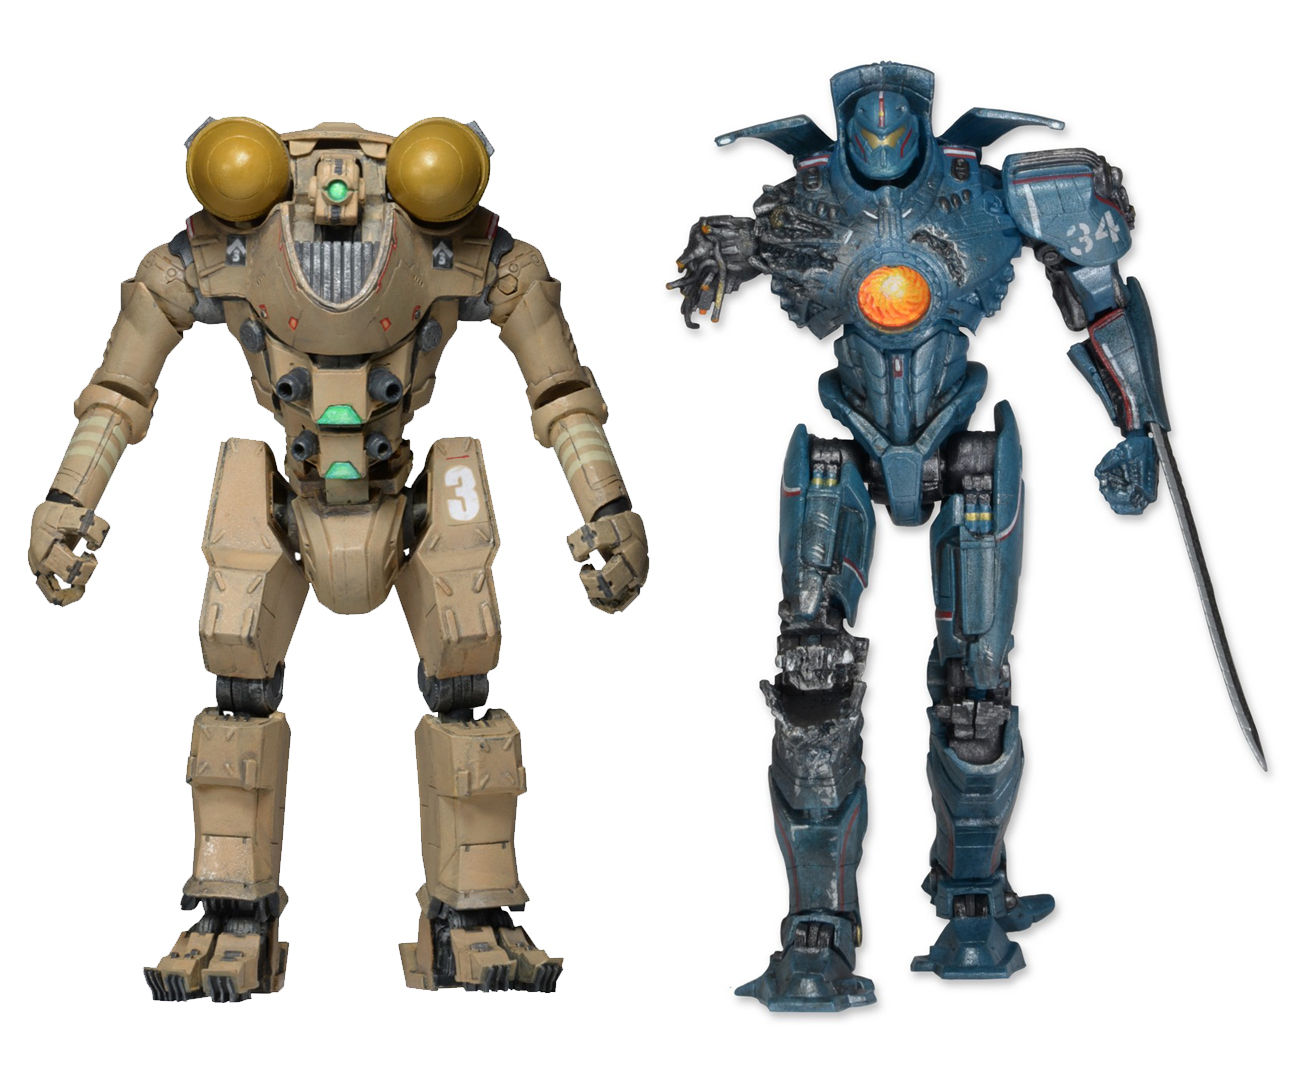 http://news.toyark.com/wp-content/uploads/sites/4/2015/01/NECA-Pacific-Rims-Series-6-Jaegers-2.jpg